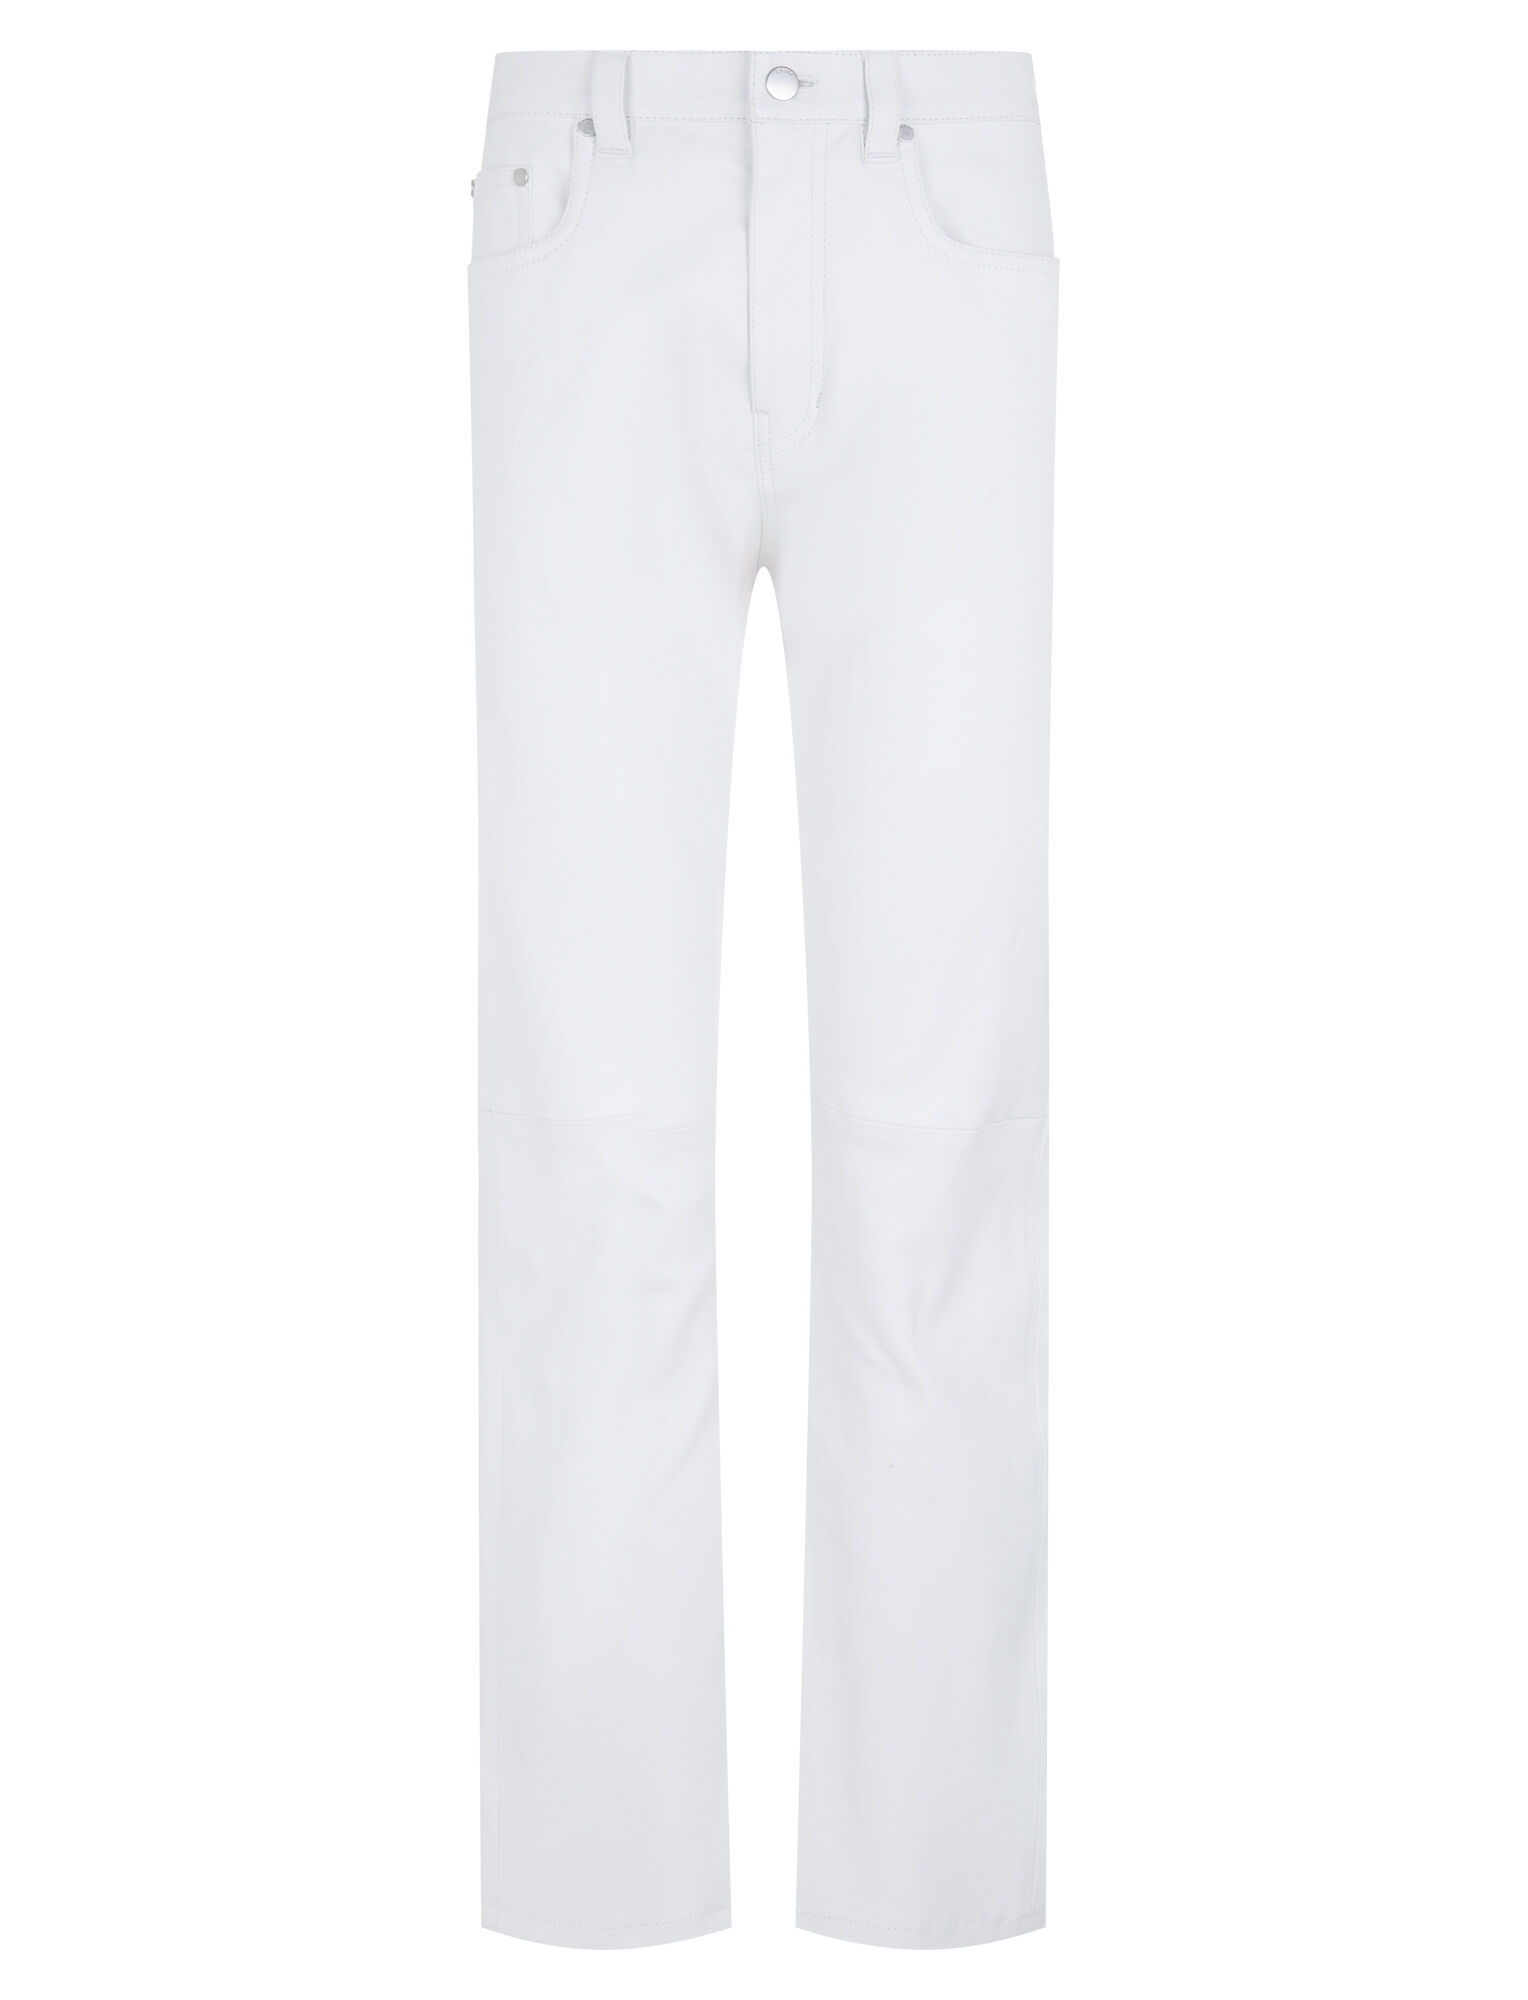 Joseph, Kemp Stretch Leather Trousers, in OFF WHITE